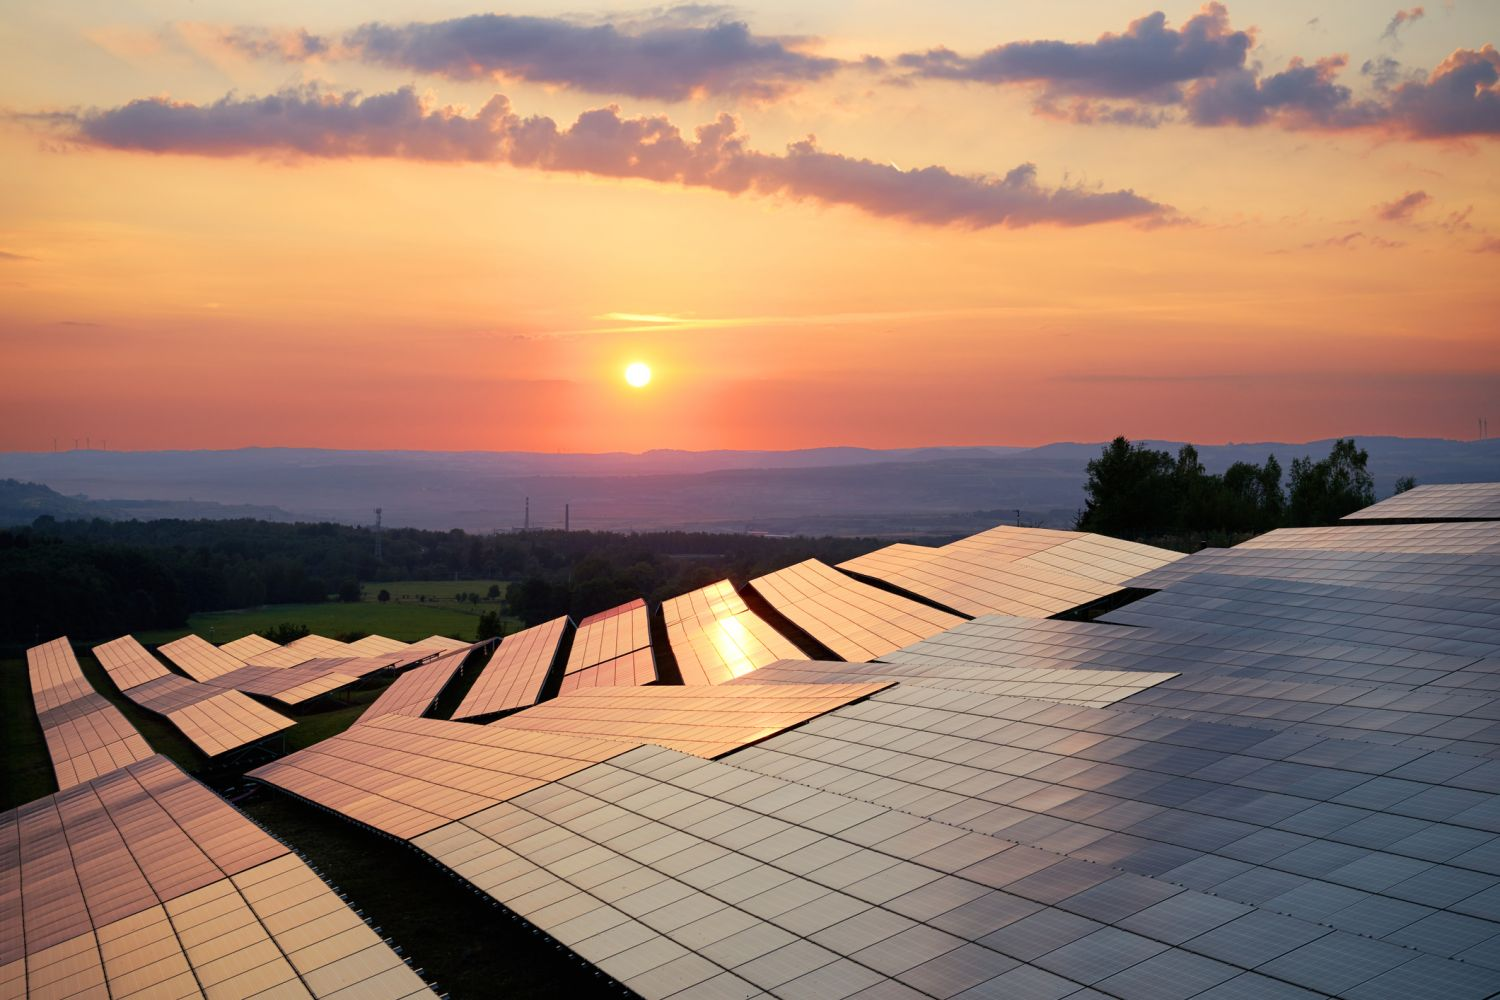 Solarpanels im Sonnenuntergang; Thema: Smart Energy